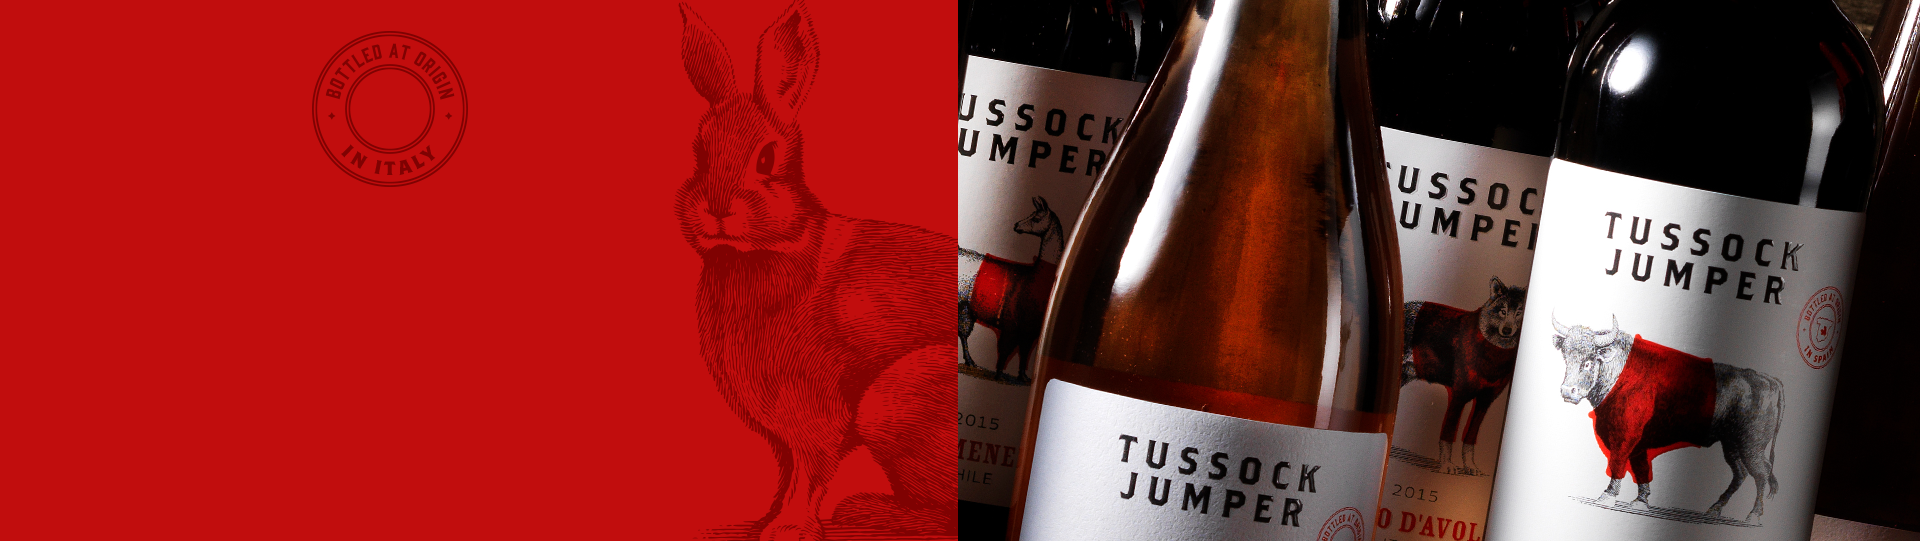 Tussock Jumper Wines - Spain - Moscato rose